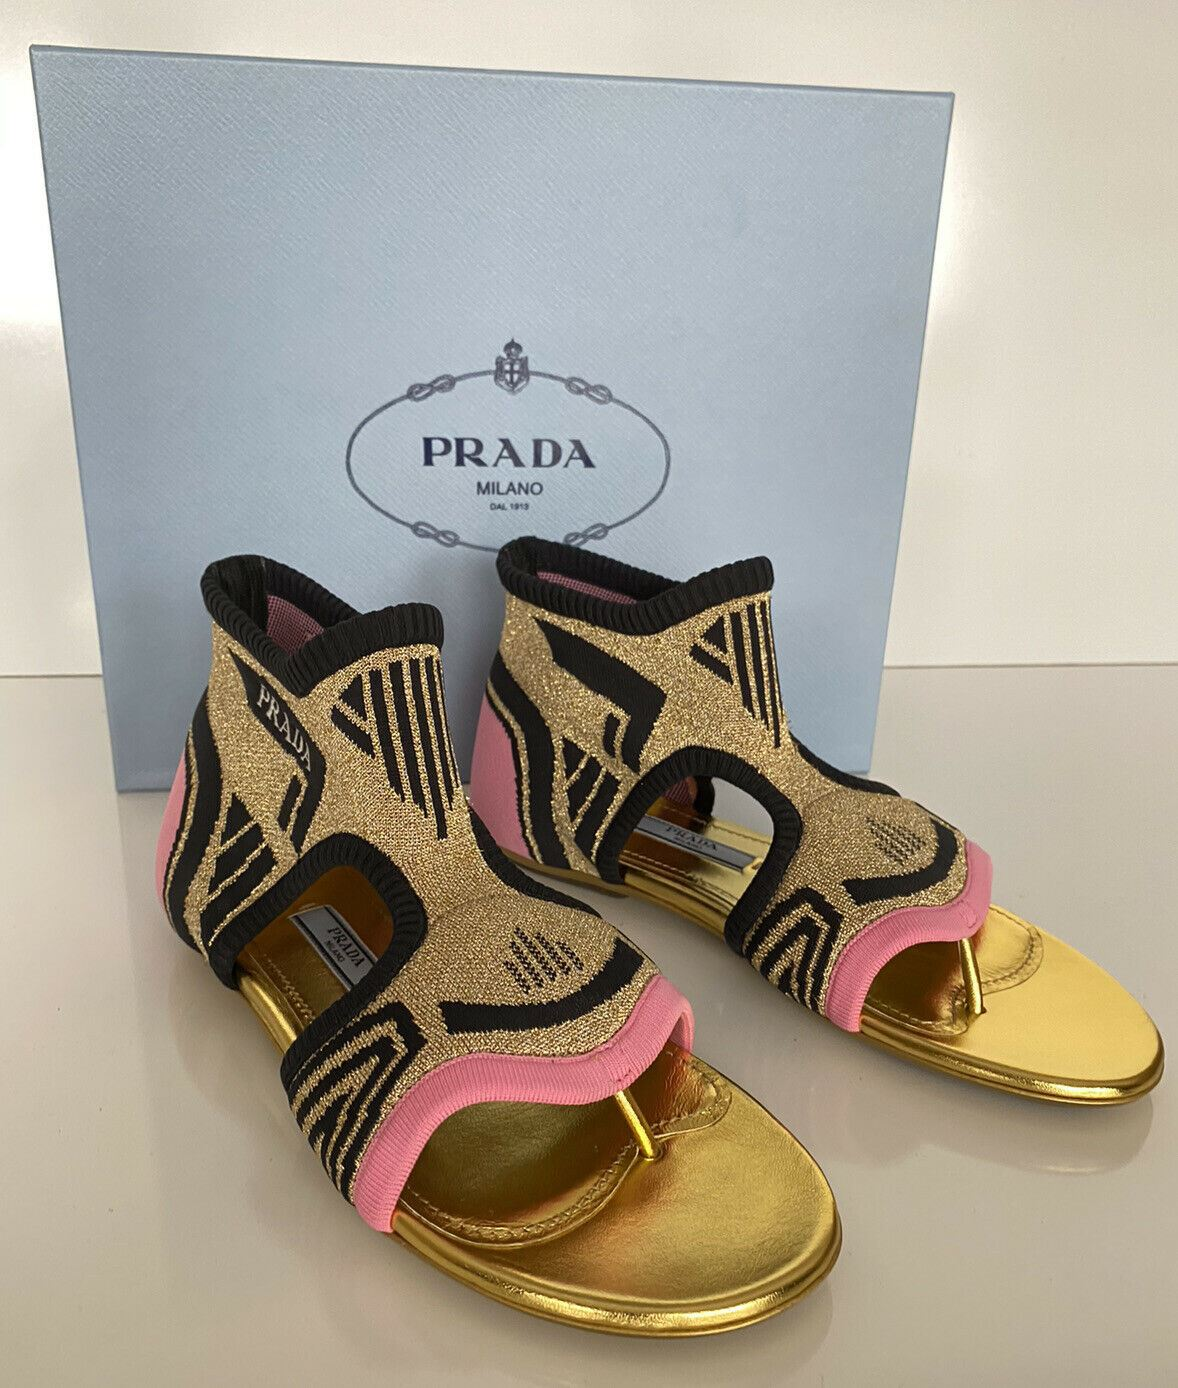 NIB PRADA Milano Womens Pink & Purple Thong Knit In Nylon Flats 38.5 1Y442L